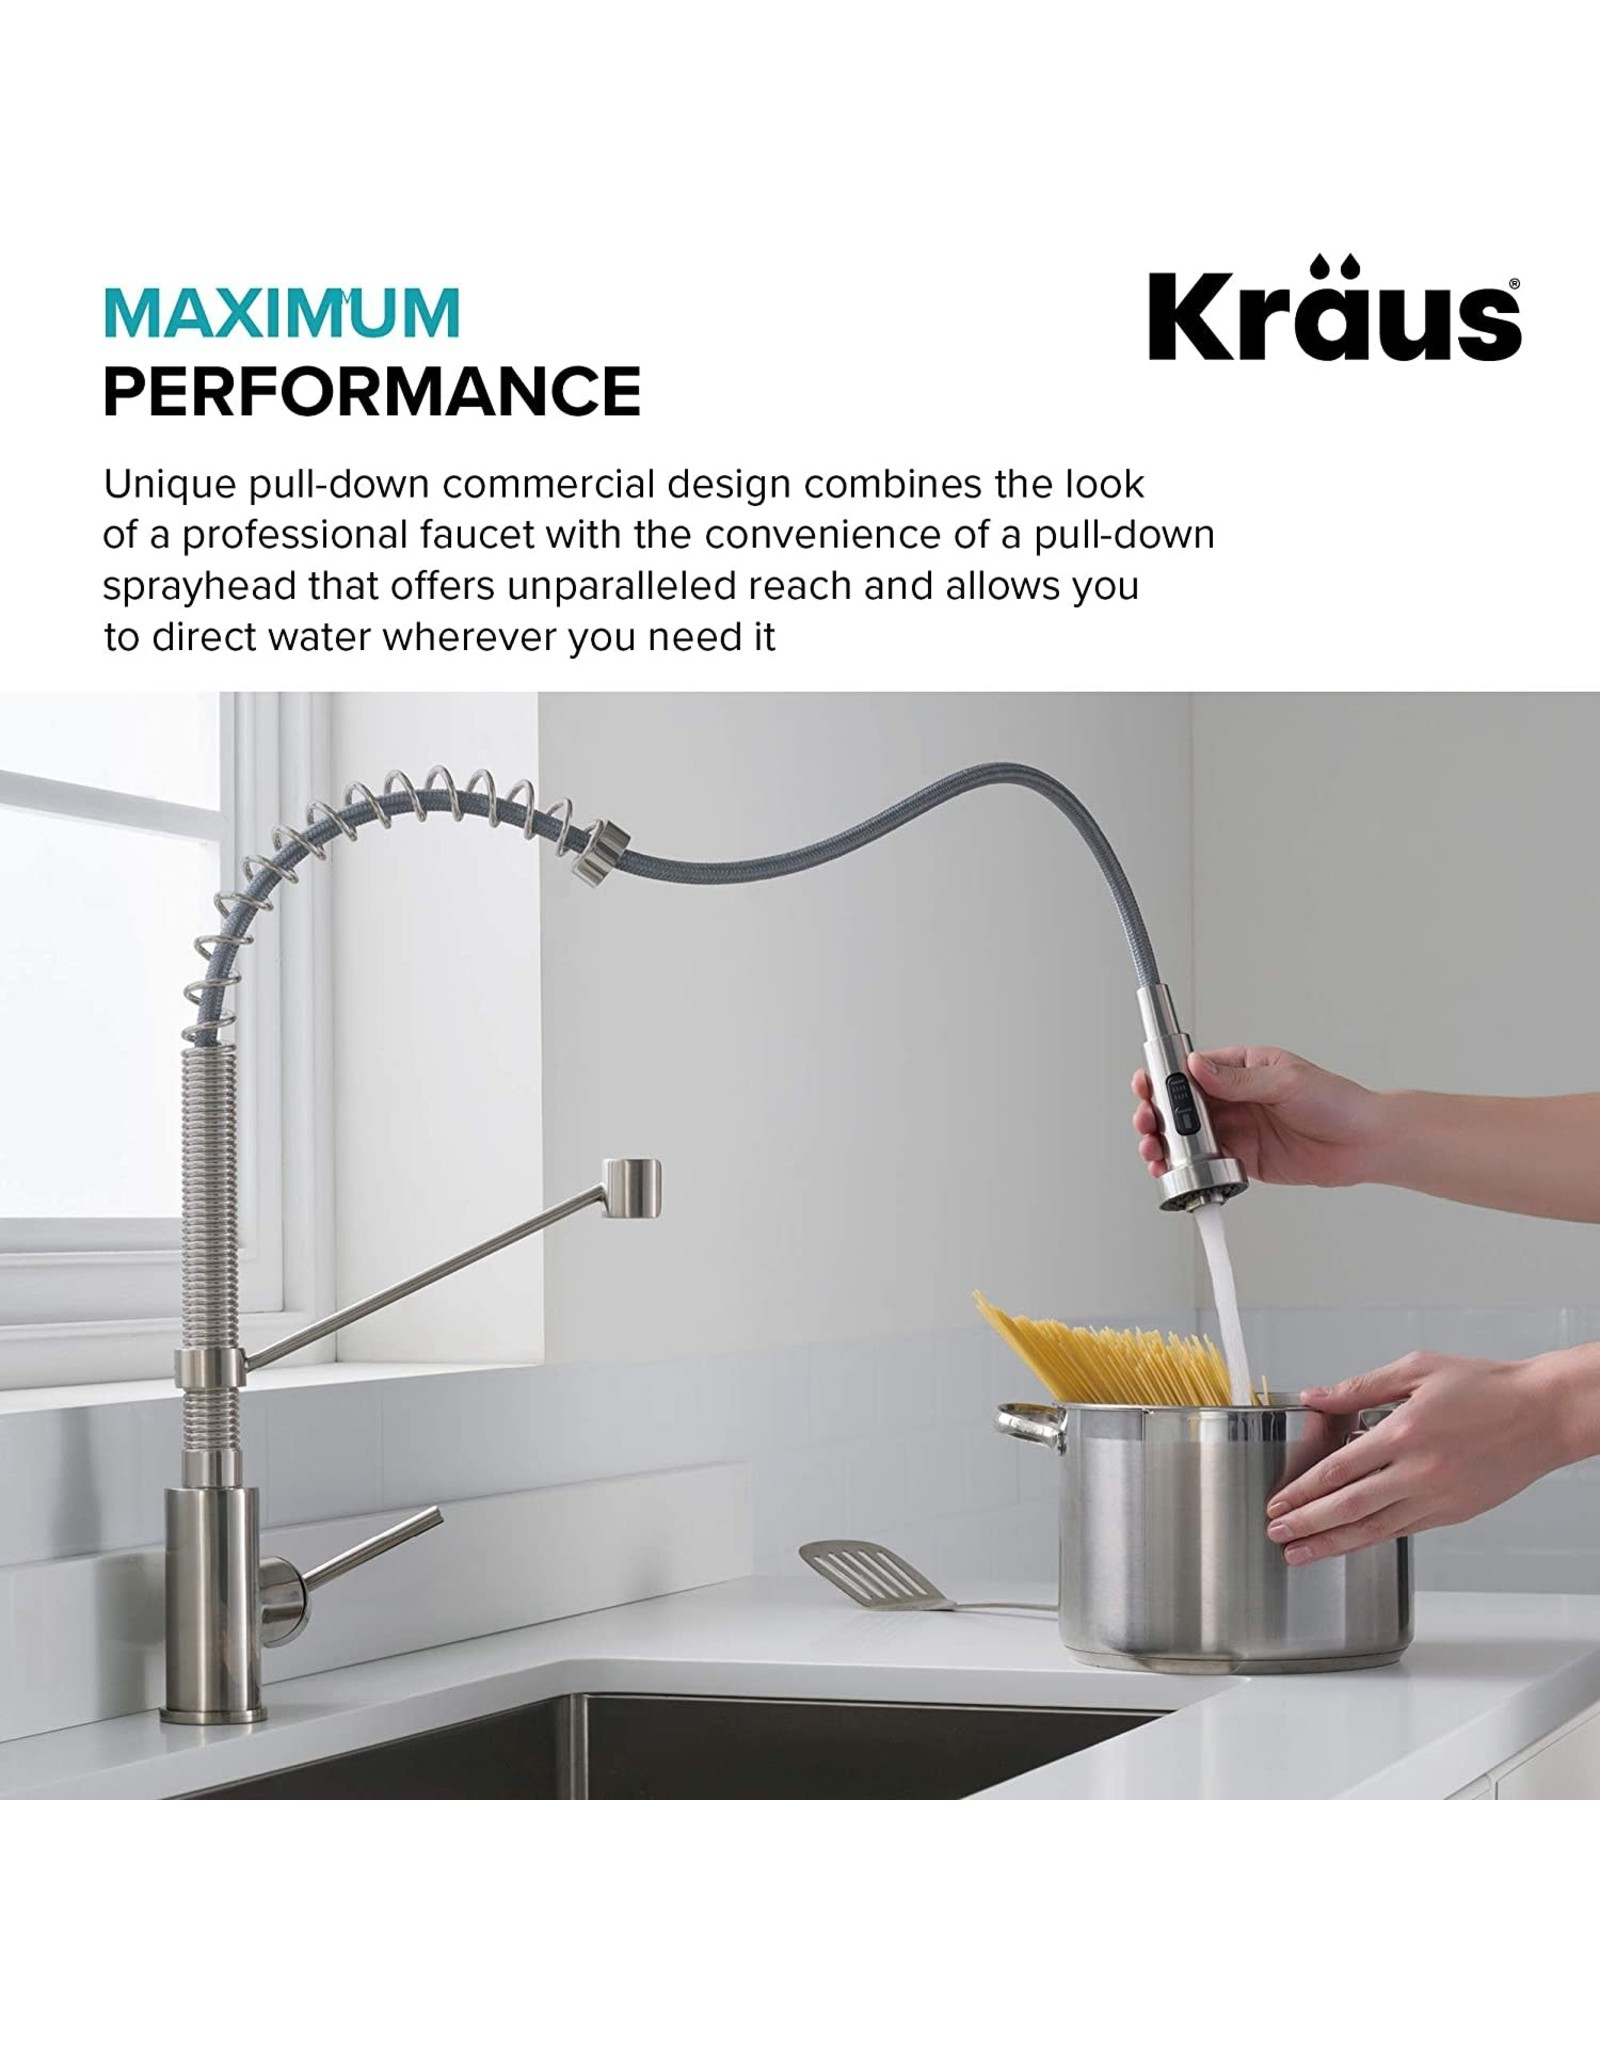 Kraus Kraus KPF-1610MBSB Bolden 18-Inch Commercial Kitchen Faucet with Dual Function Pull-Down Sprayhead in all-Brite Finish, Matte Black/Black Stainless Steel